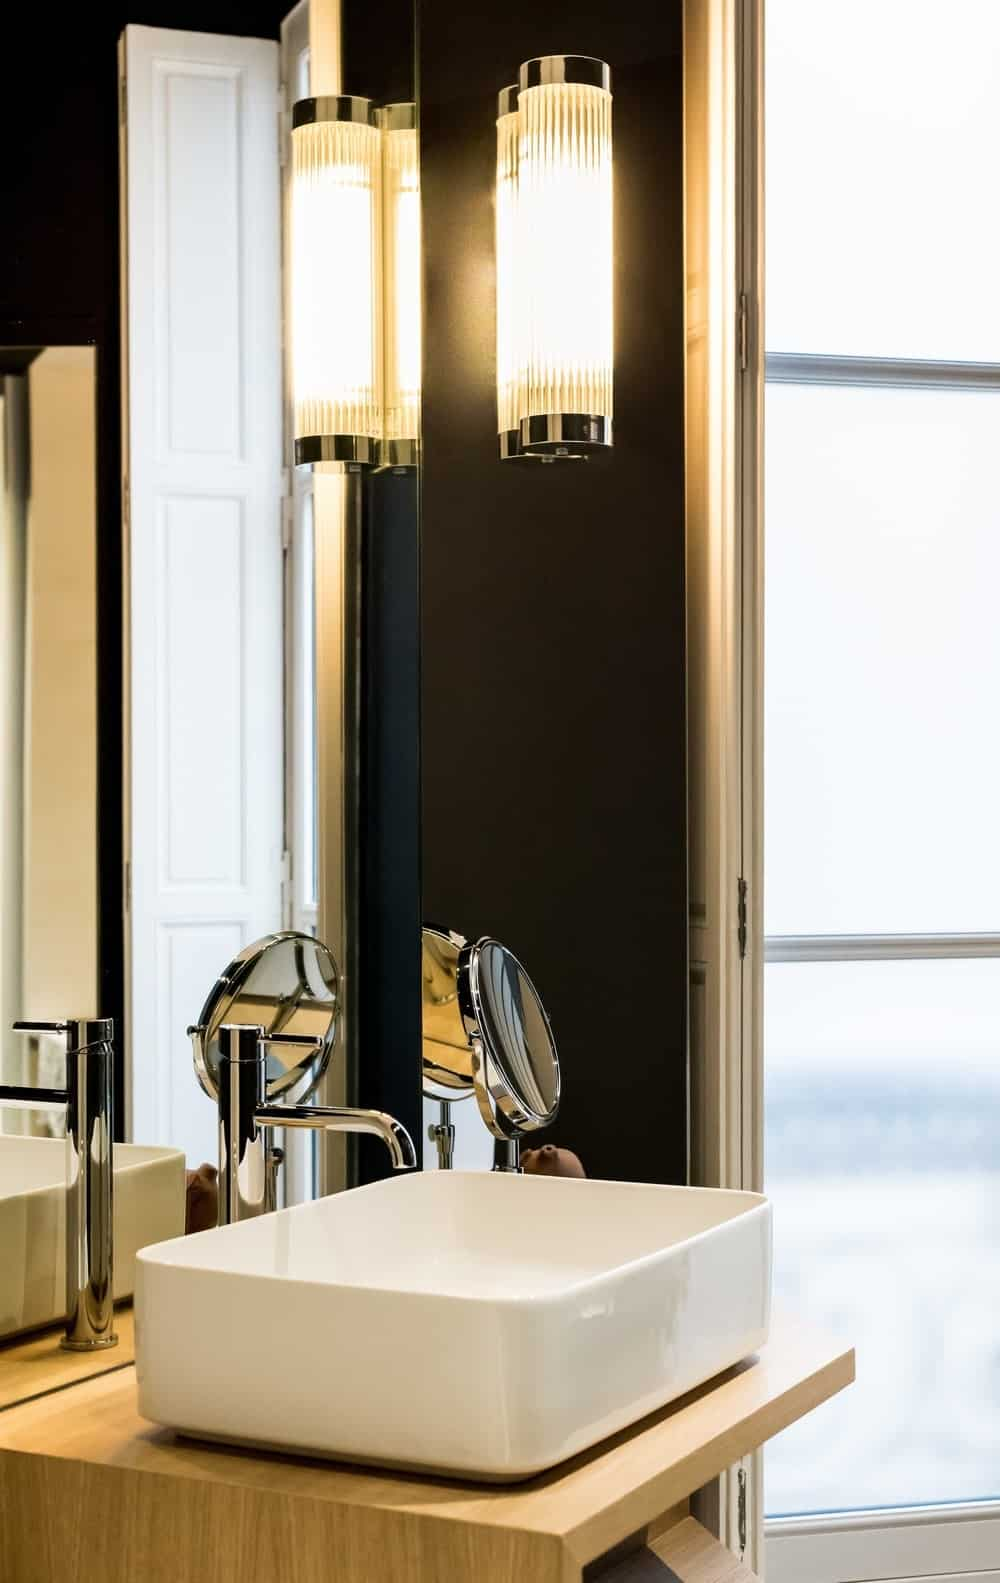 Vessel sink on a contemporary bathroom lighted by a wall light. Photo credit: Mickaël Martins Afonso